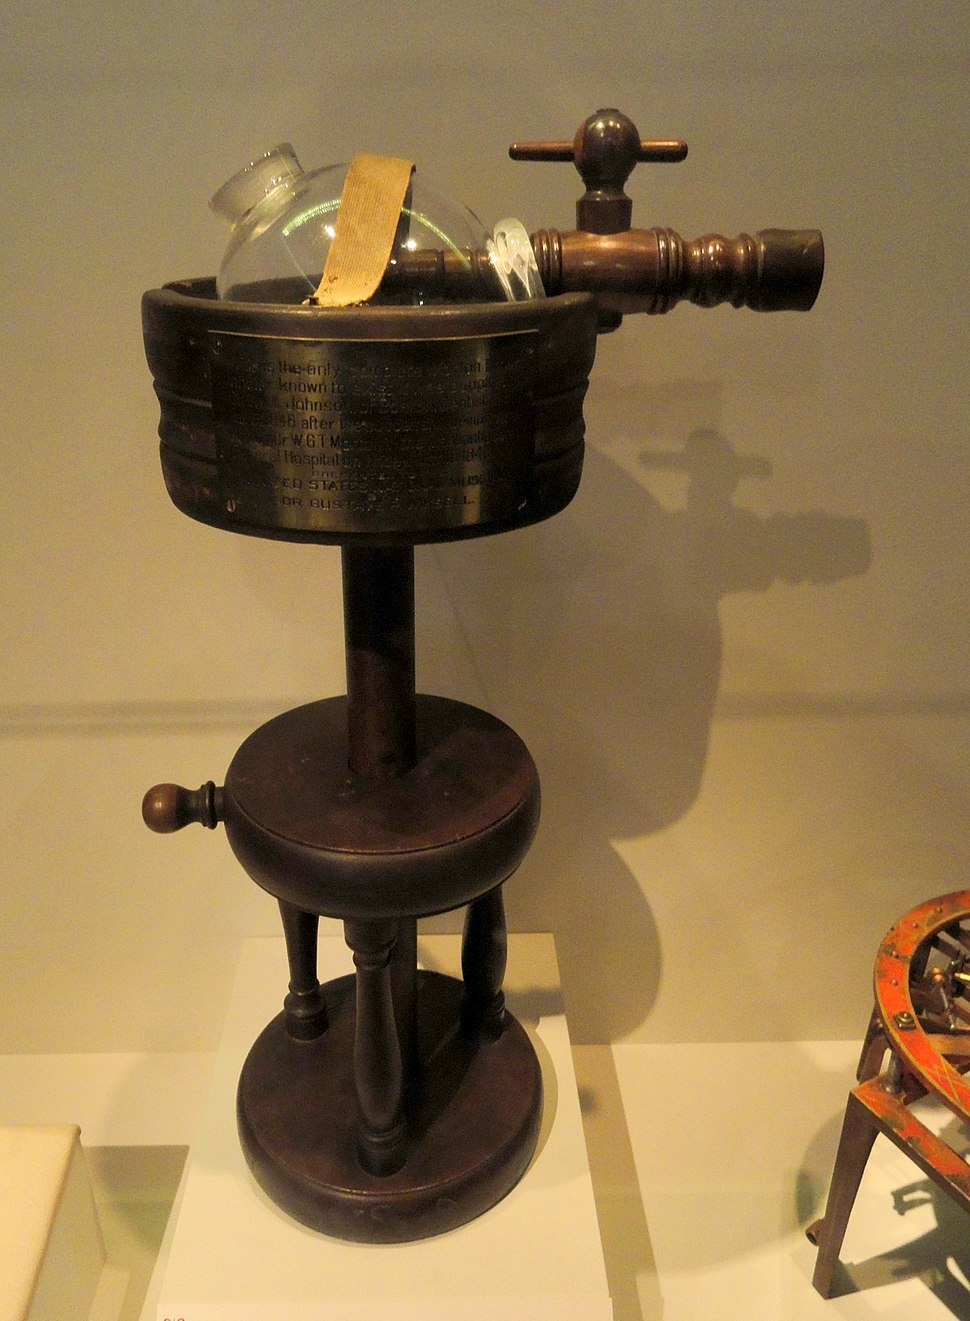 Ether inhaler, c. 1846, developed by William T. G. Morton - National Museum of American History - DSC06167